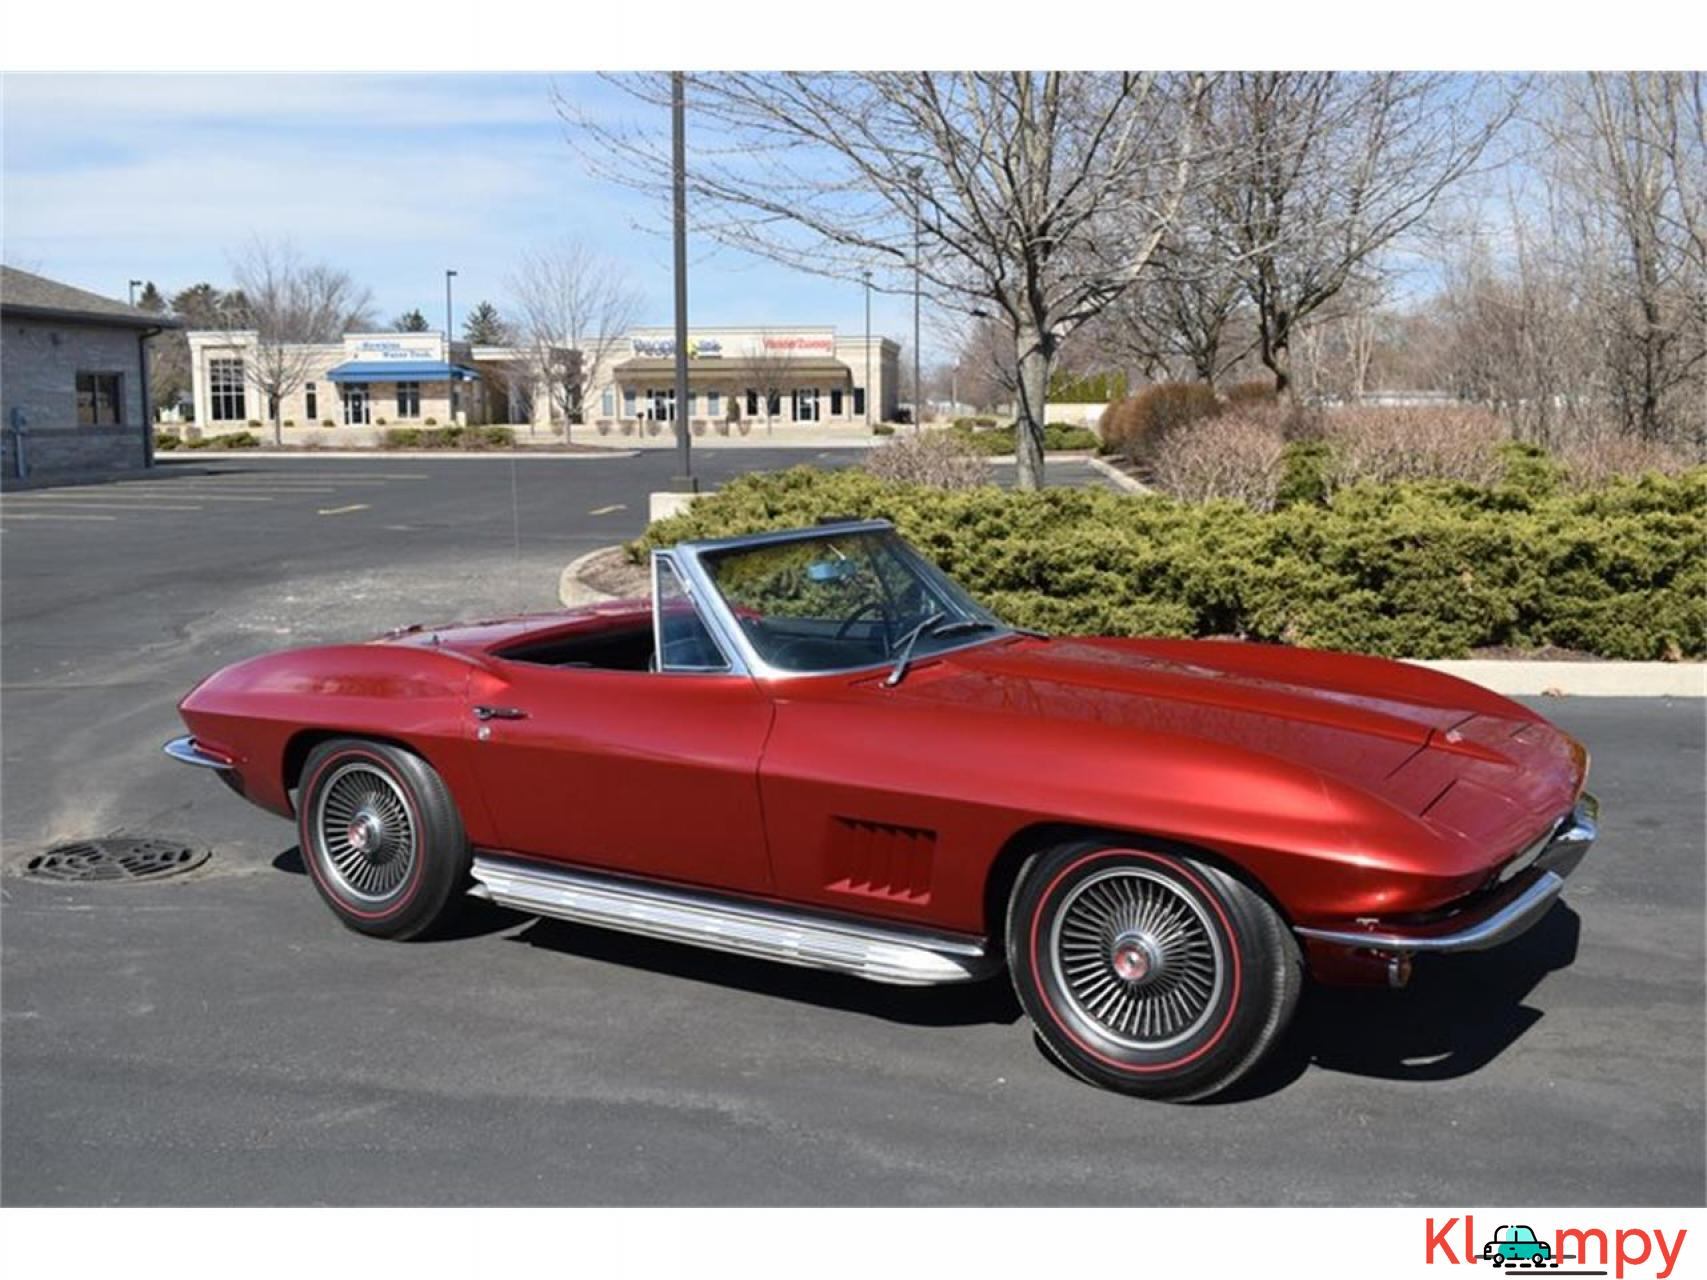 1967 Chevrolet Corvette 350HP 327 Cu In V8 - 14/20